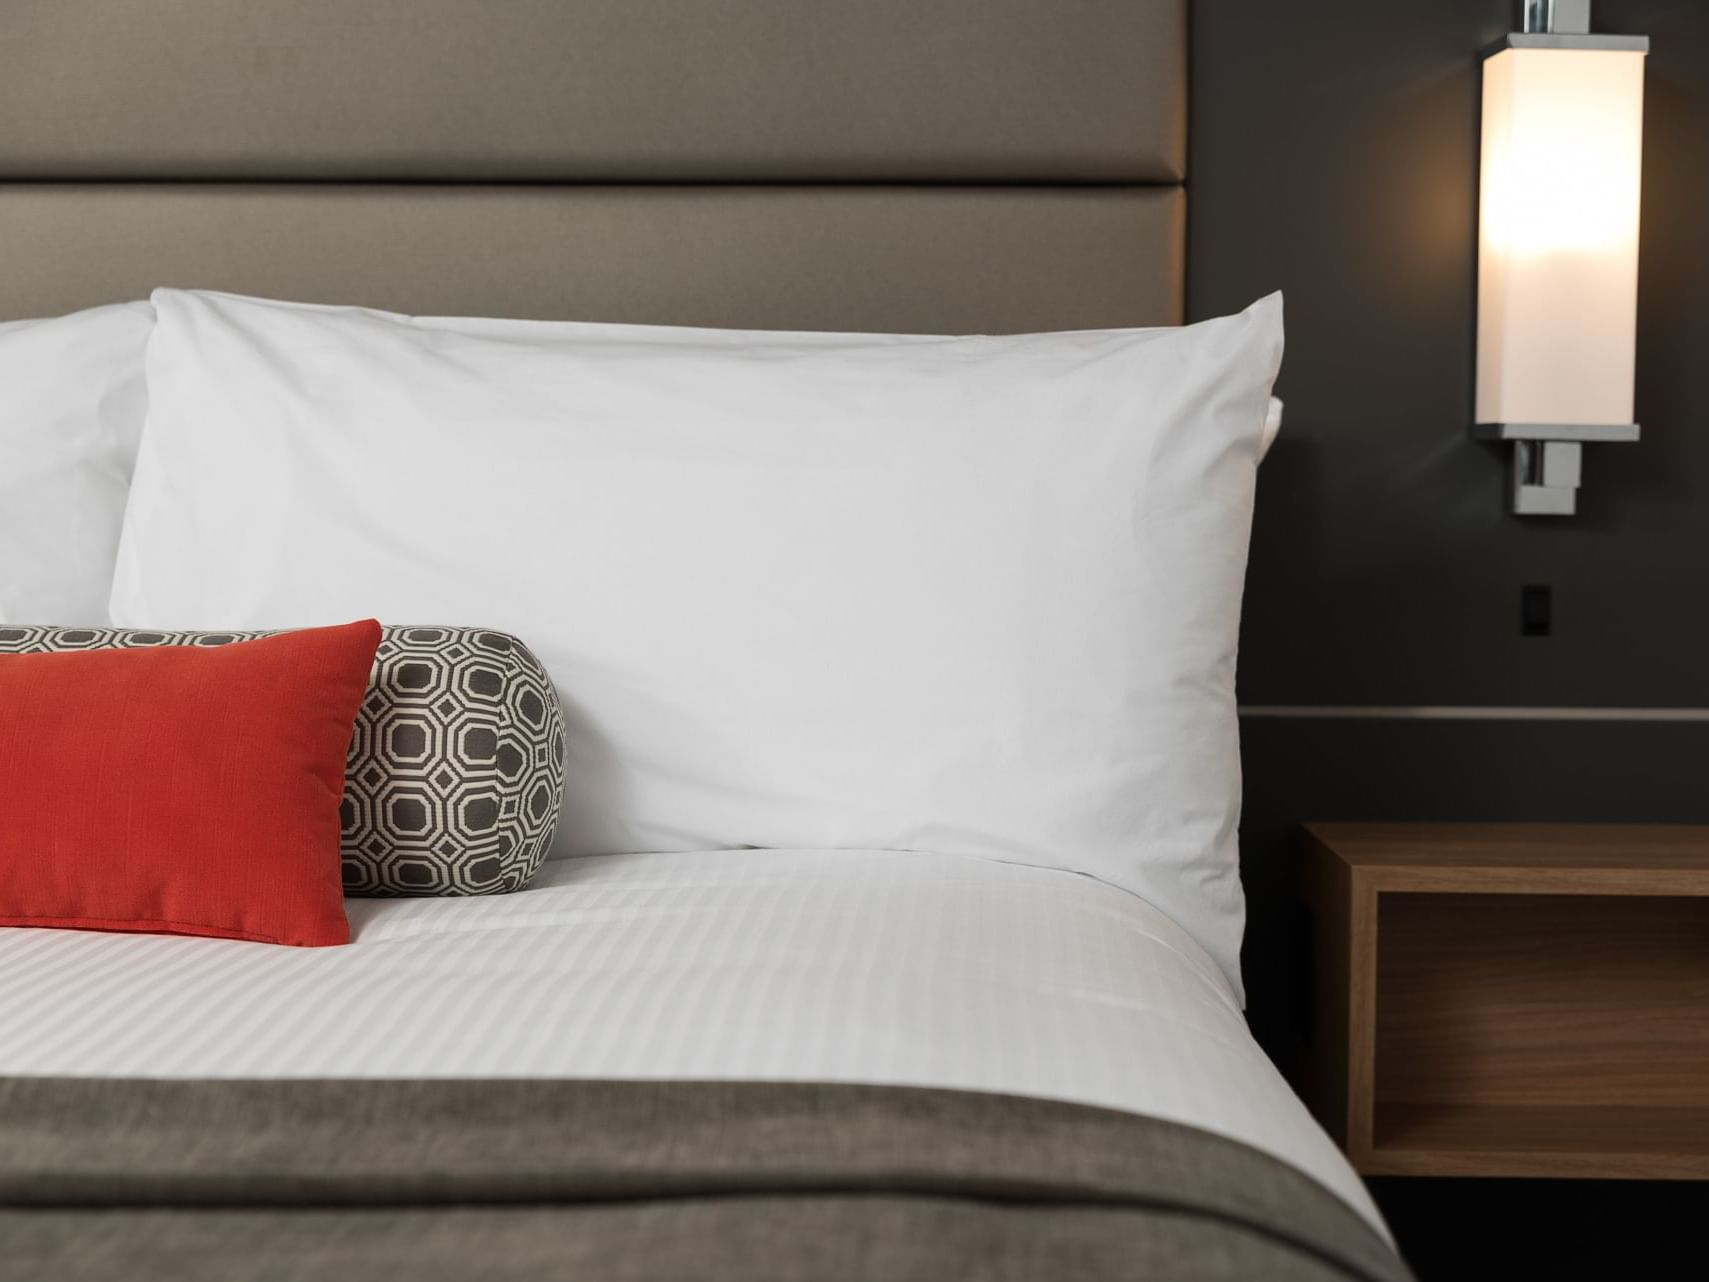 Premium Queen Room with one bed at Carriage House Hotel